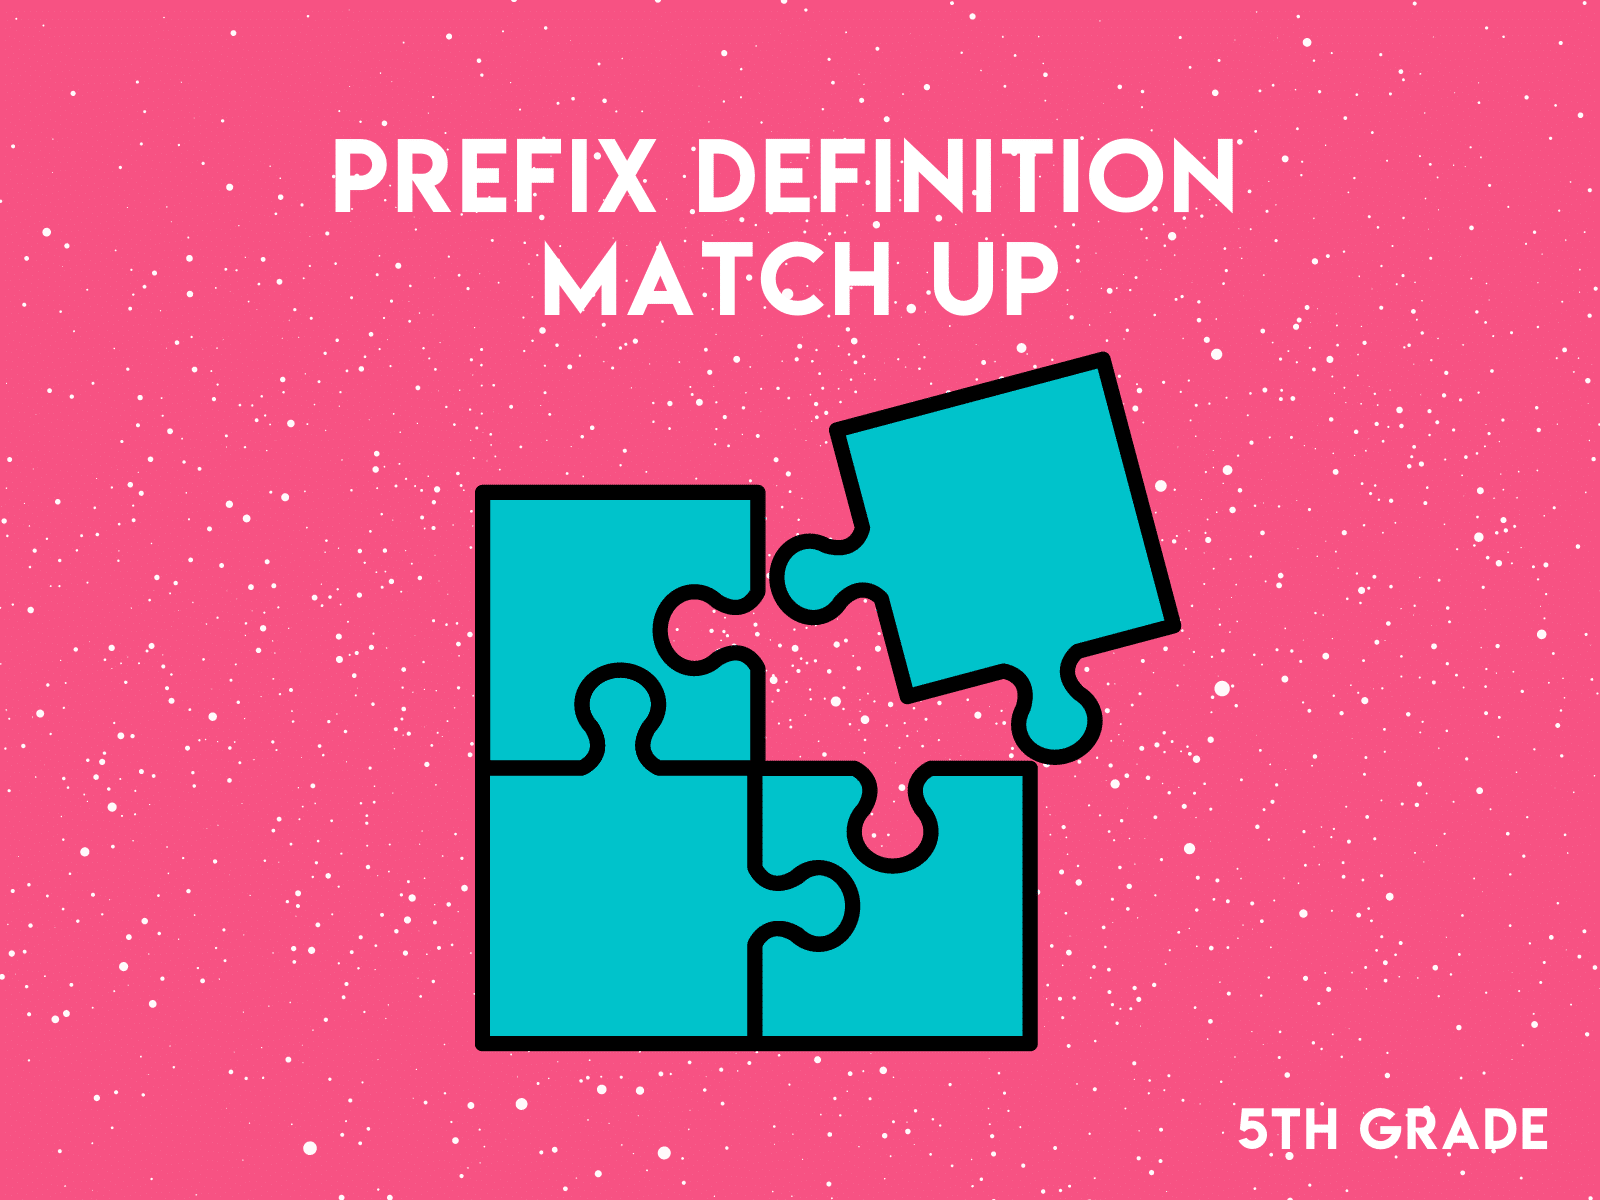 Prefix Definition Match Up   Spelling words for 5th grade